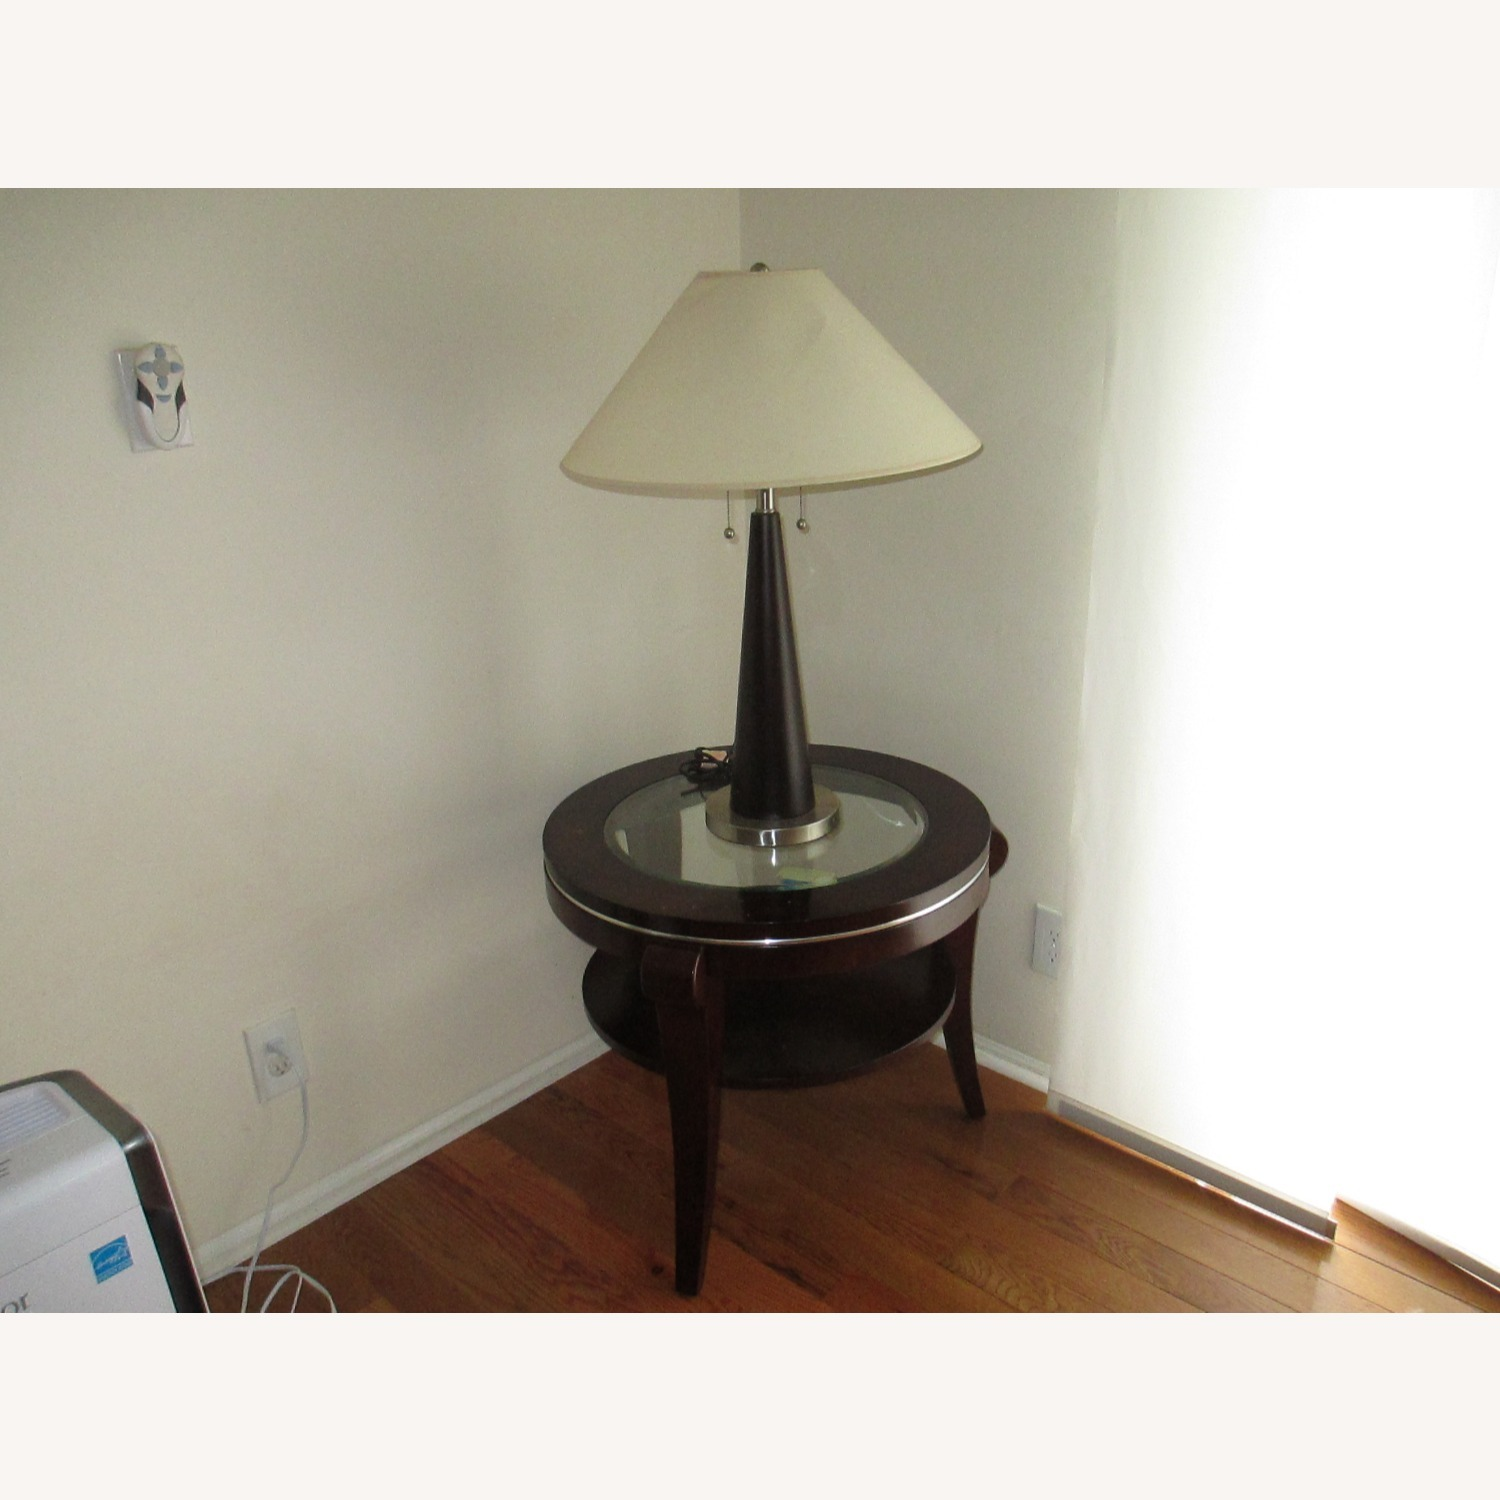 Identical Twin Side Table Lamps - image-1